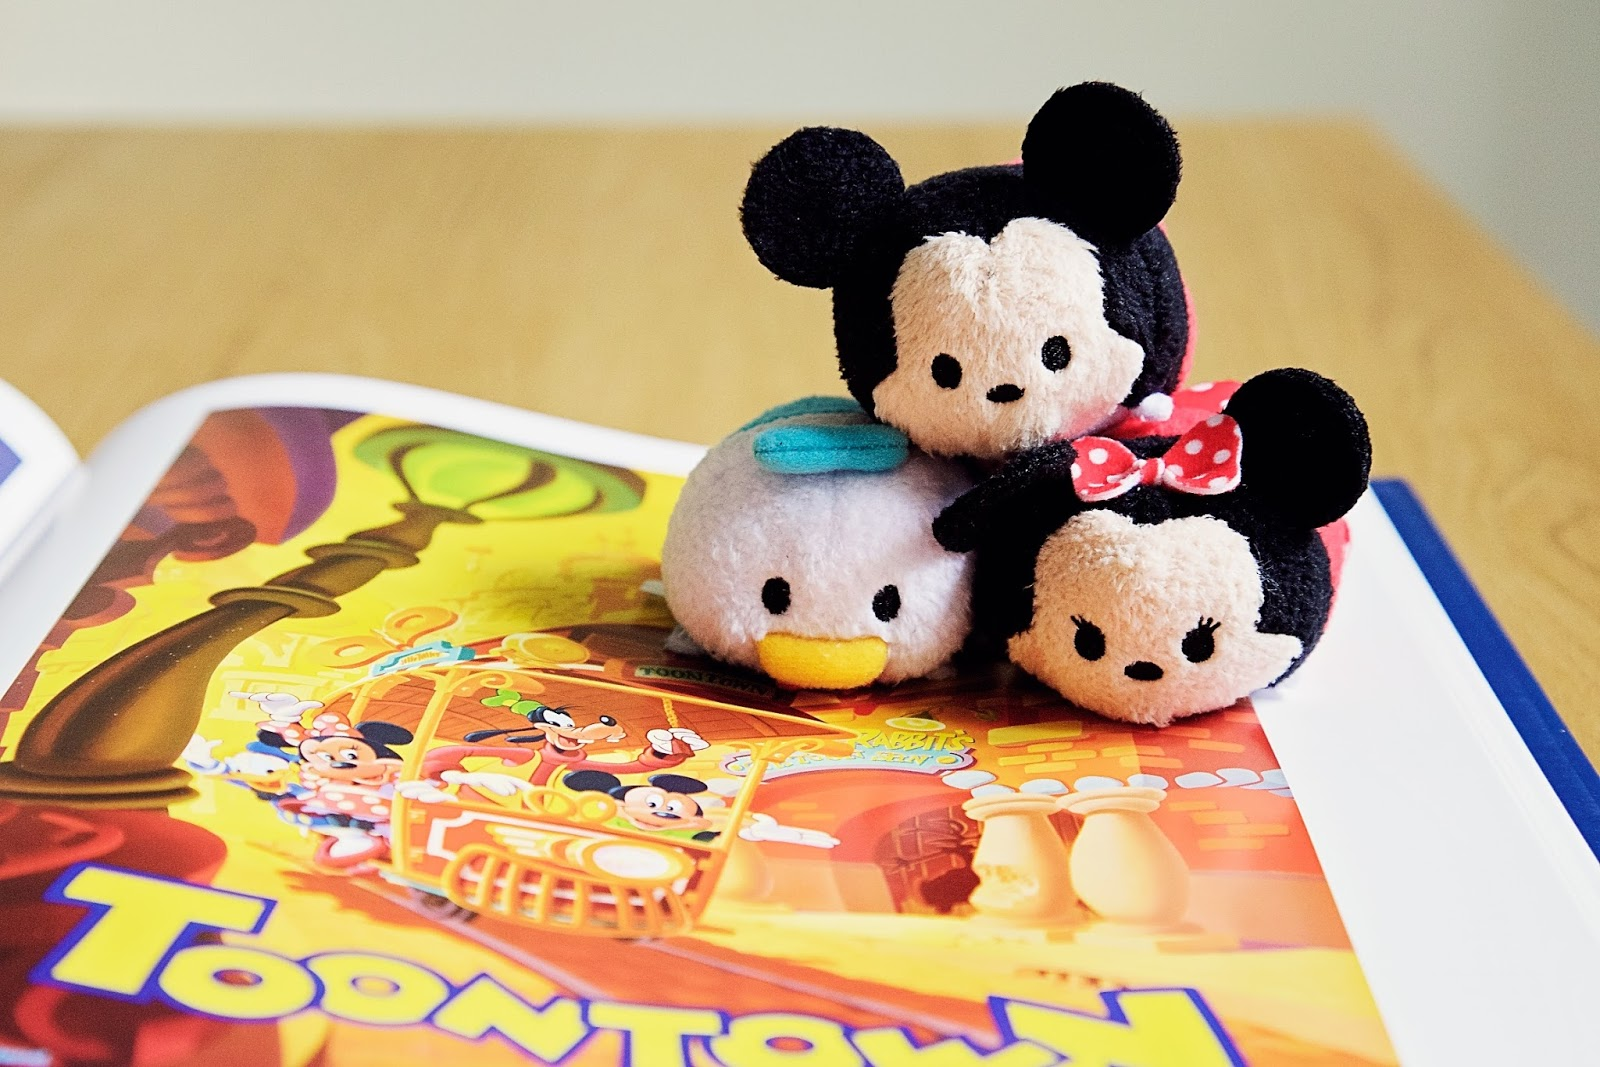 Disney Mickey, Minnie, and Donald Tsum Tsums on top of Mickey and Friends image.